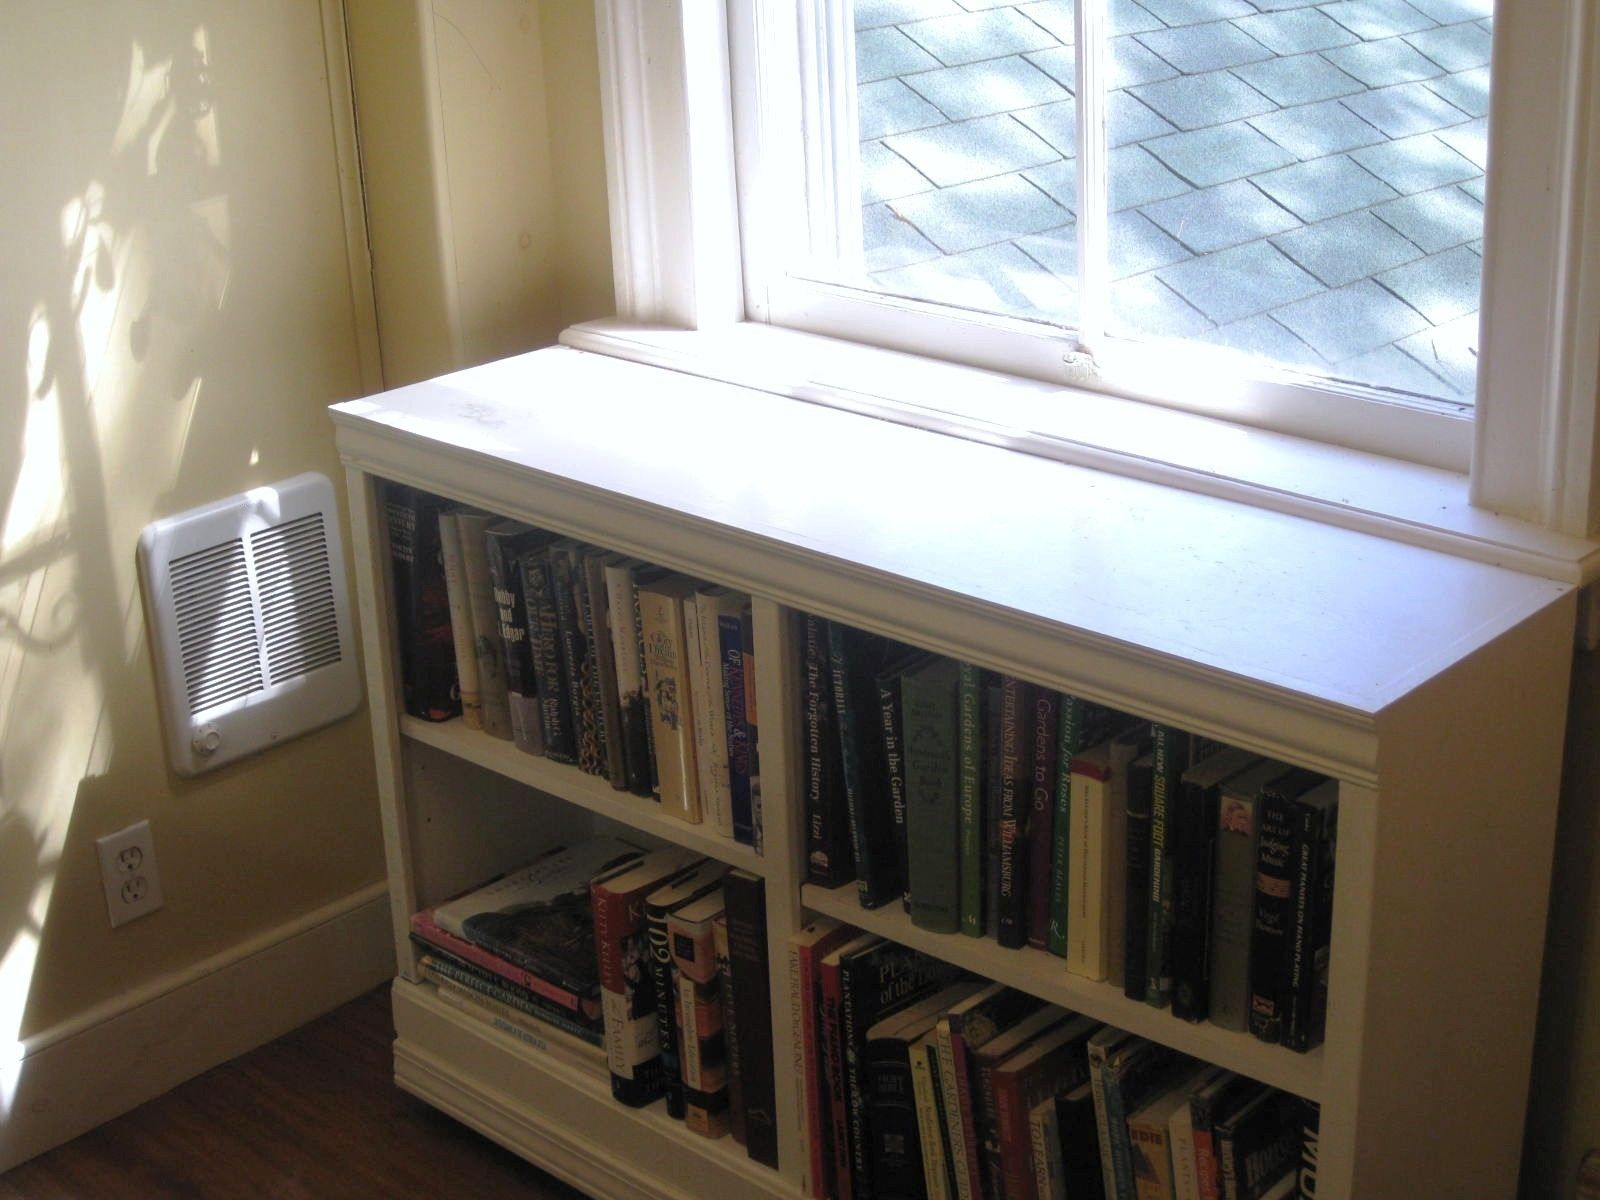 Kitchen window without sill  kitchen window sill shelf  navigatorspbfo  pinterest